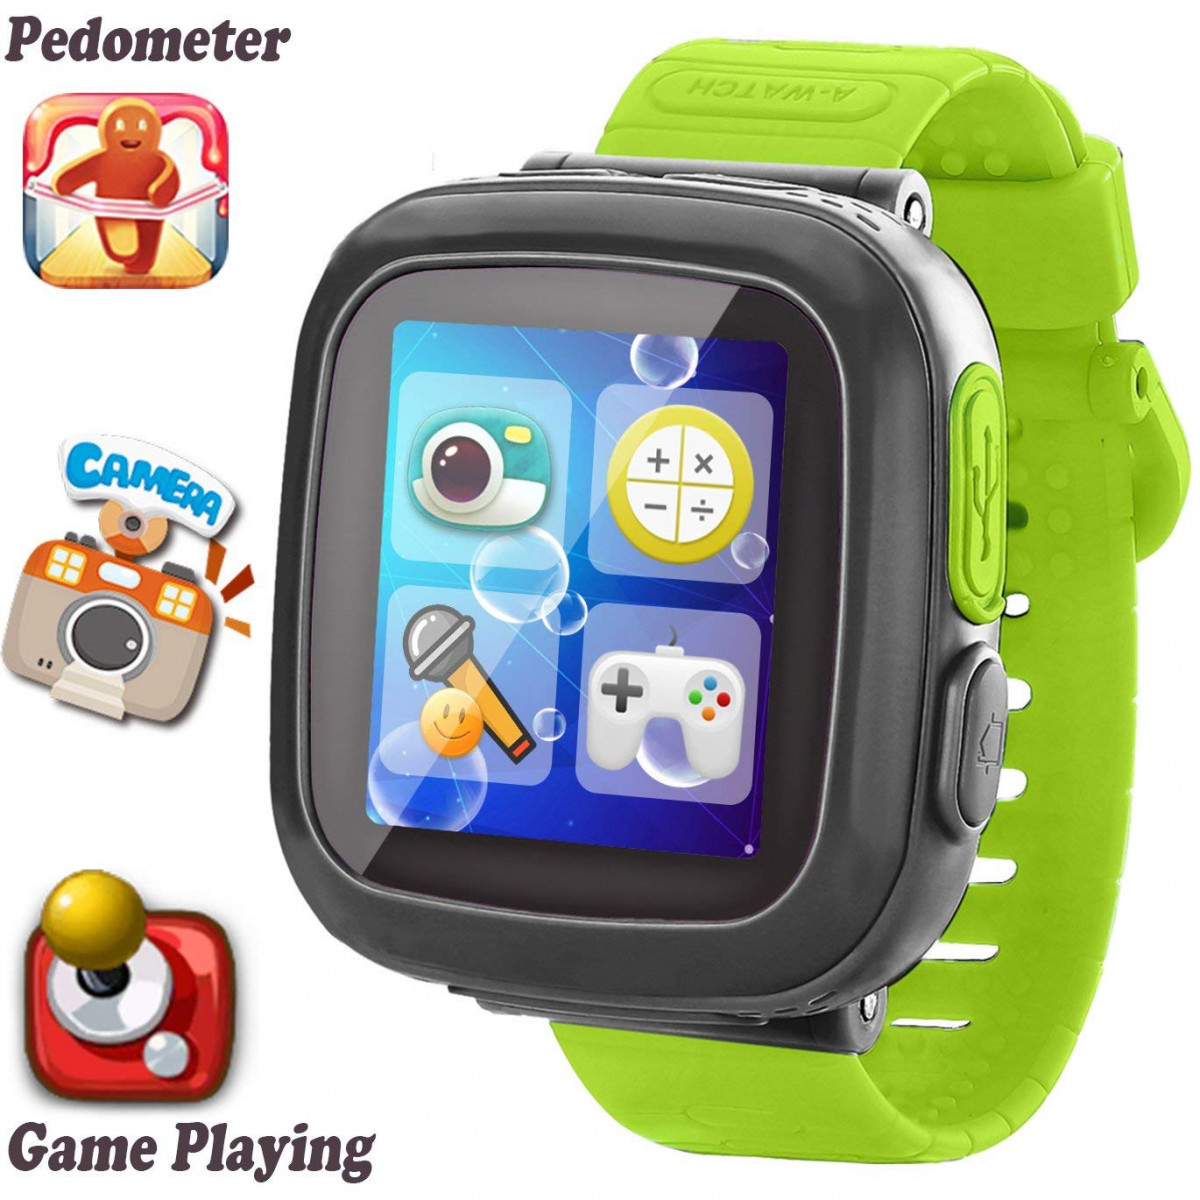 Kids Game Smart Watch Ar Pro Edition For 3 12 Year Girls Boys Learning Wrist Watch With 15 Touchscreen Camera Pedometer Timer Alarm Clock Fitness